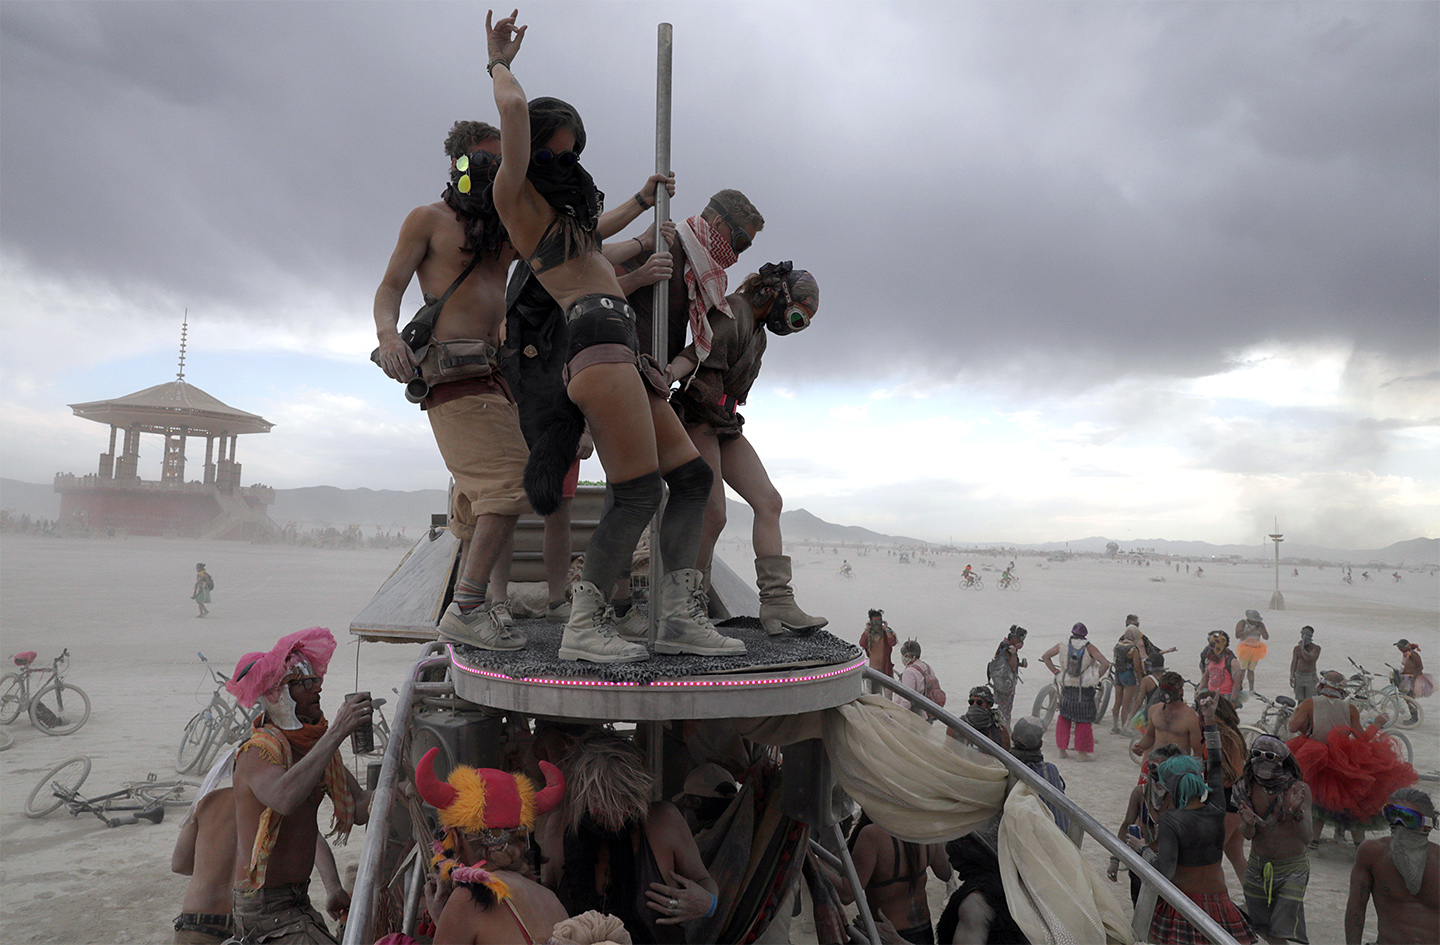 the burning man project The official burning man youtube channel this channel celebrates burning man's history, ethos, international community, and growing year-round culture here.